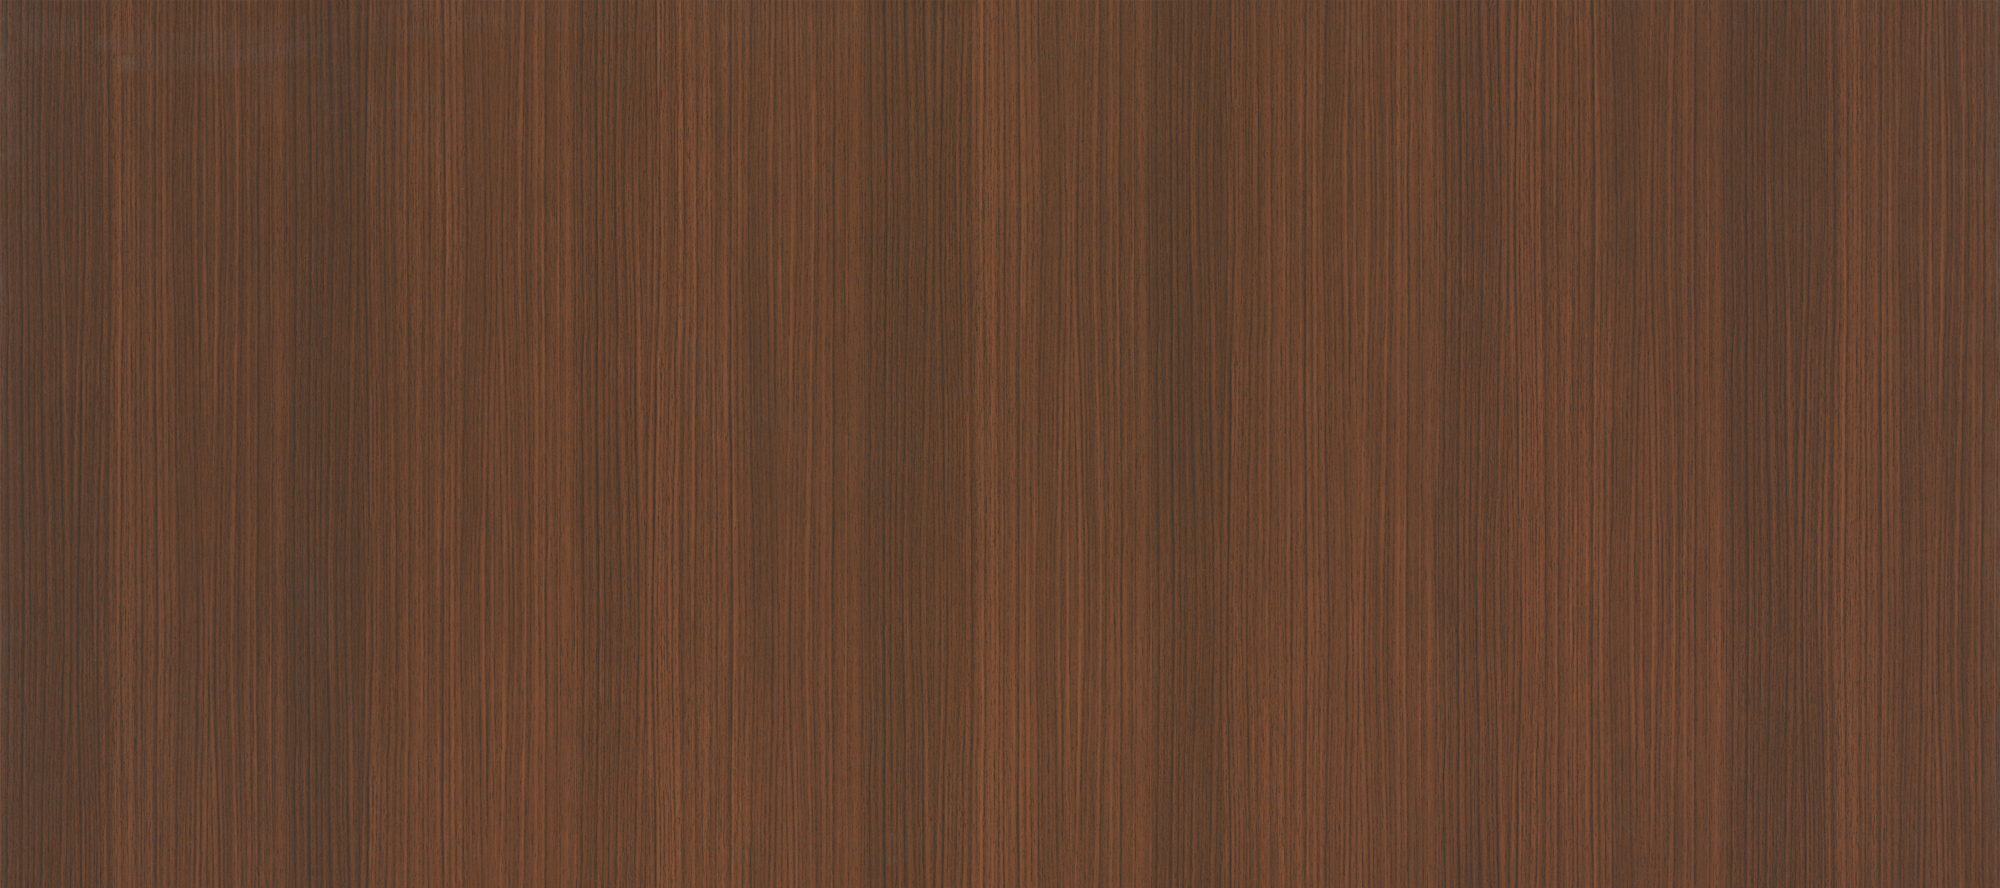 1MM International, South Supreme In Laminates For Office-Sundek International